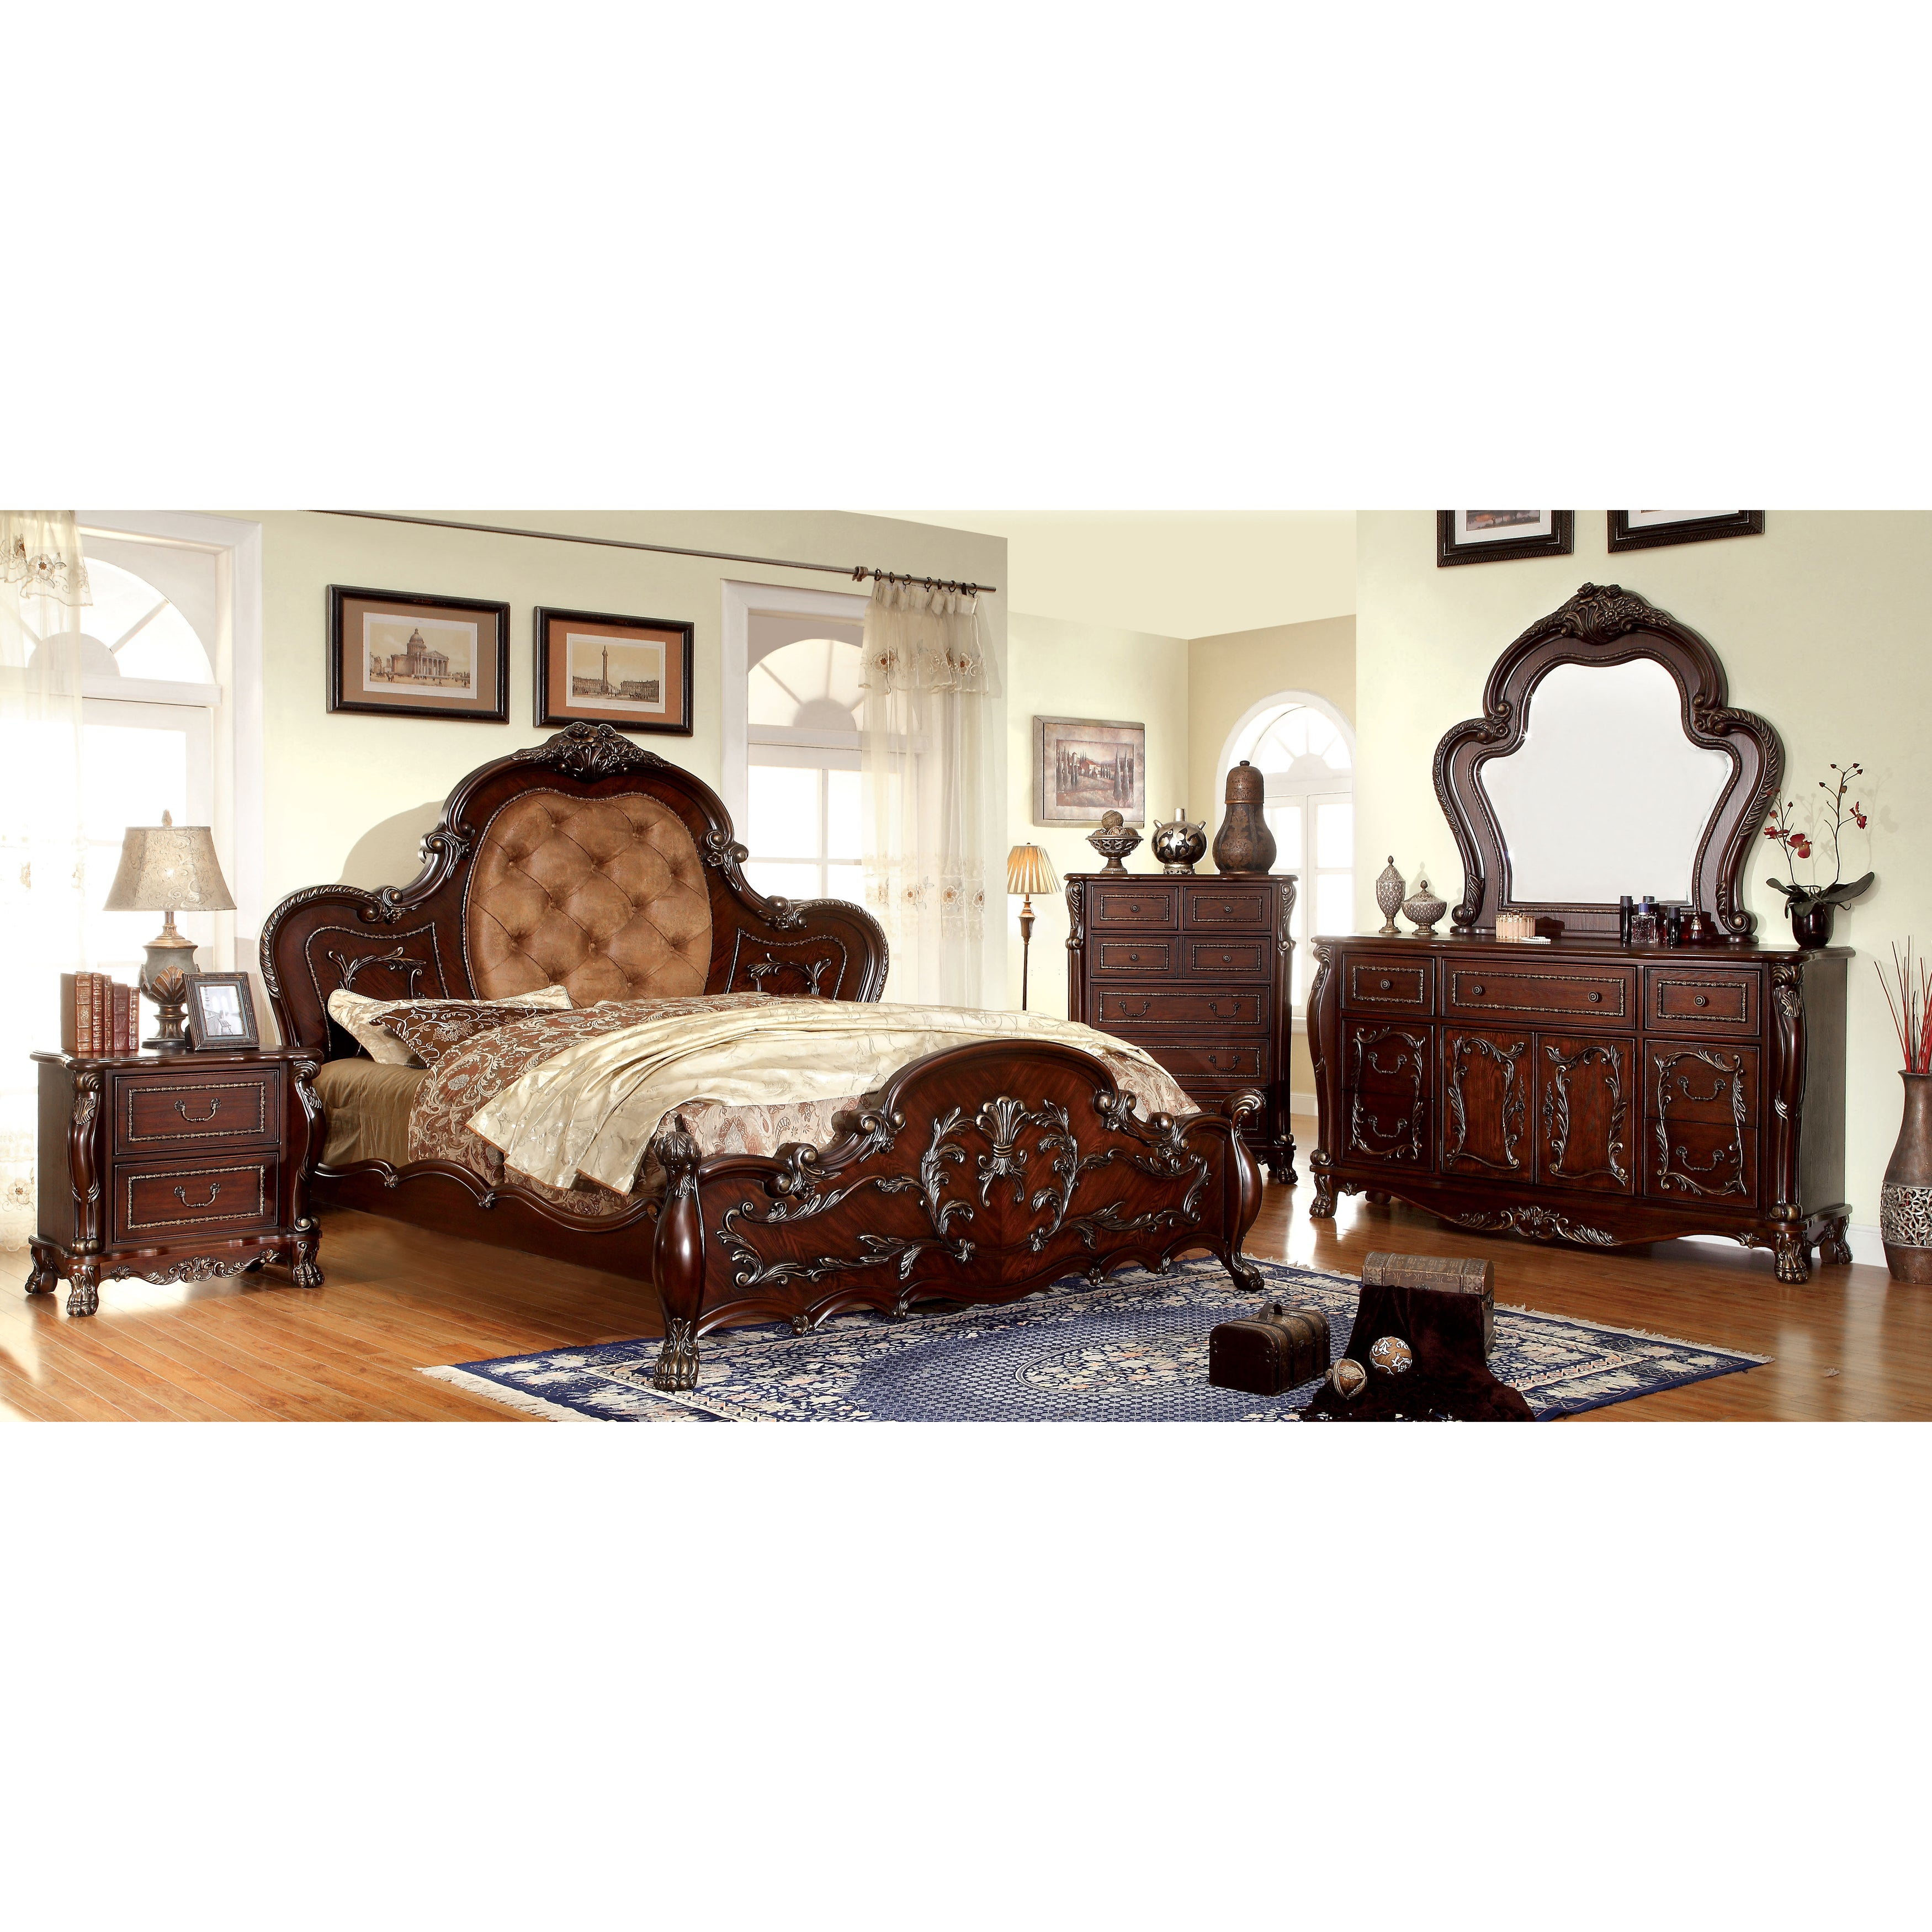 Traditional Bedroom Sets For Less Overstockcom